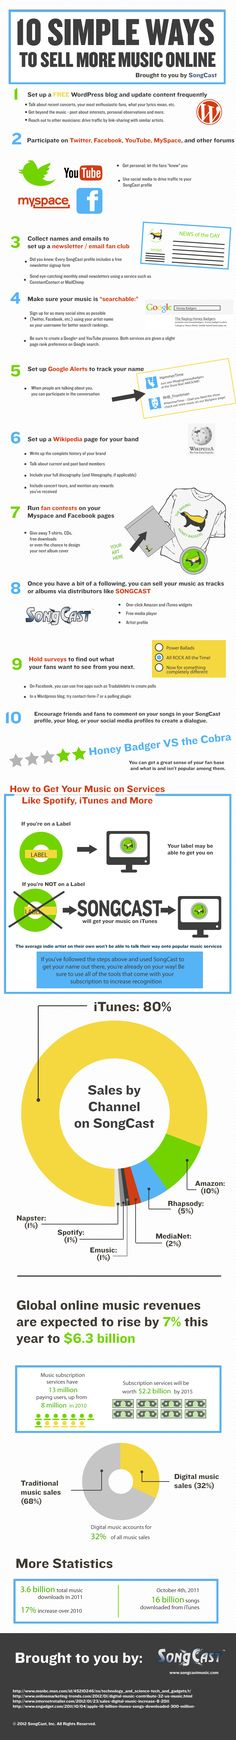 10 Tips to Sell Music Online [Infographic]